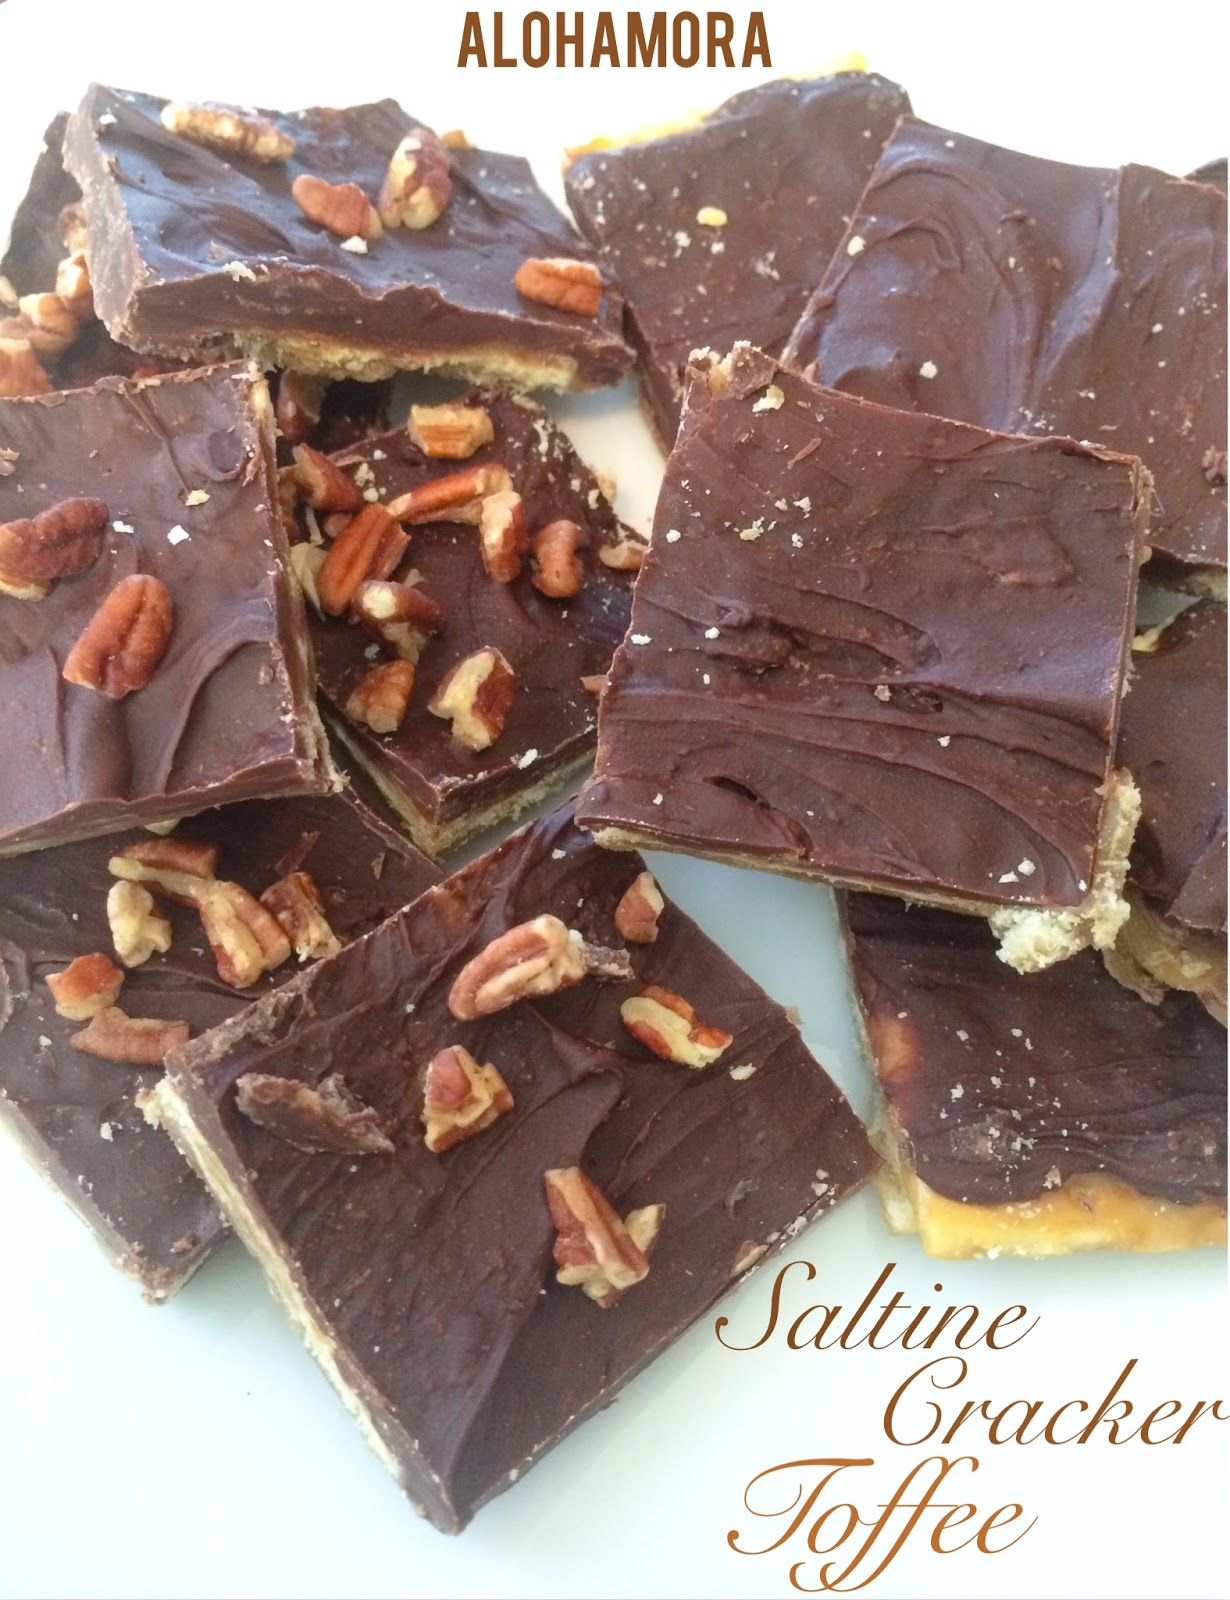 Saltine Cracker Toffee: Sweet and Salty and easy to make.  Makes a great gift, or an easy batch of some tasty treats.  Great party treat as well. Alohamora Open a Book http://alohamoraopenabook.blogspot.com/